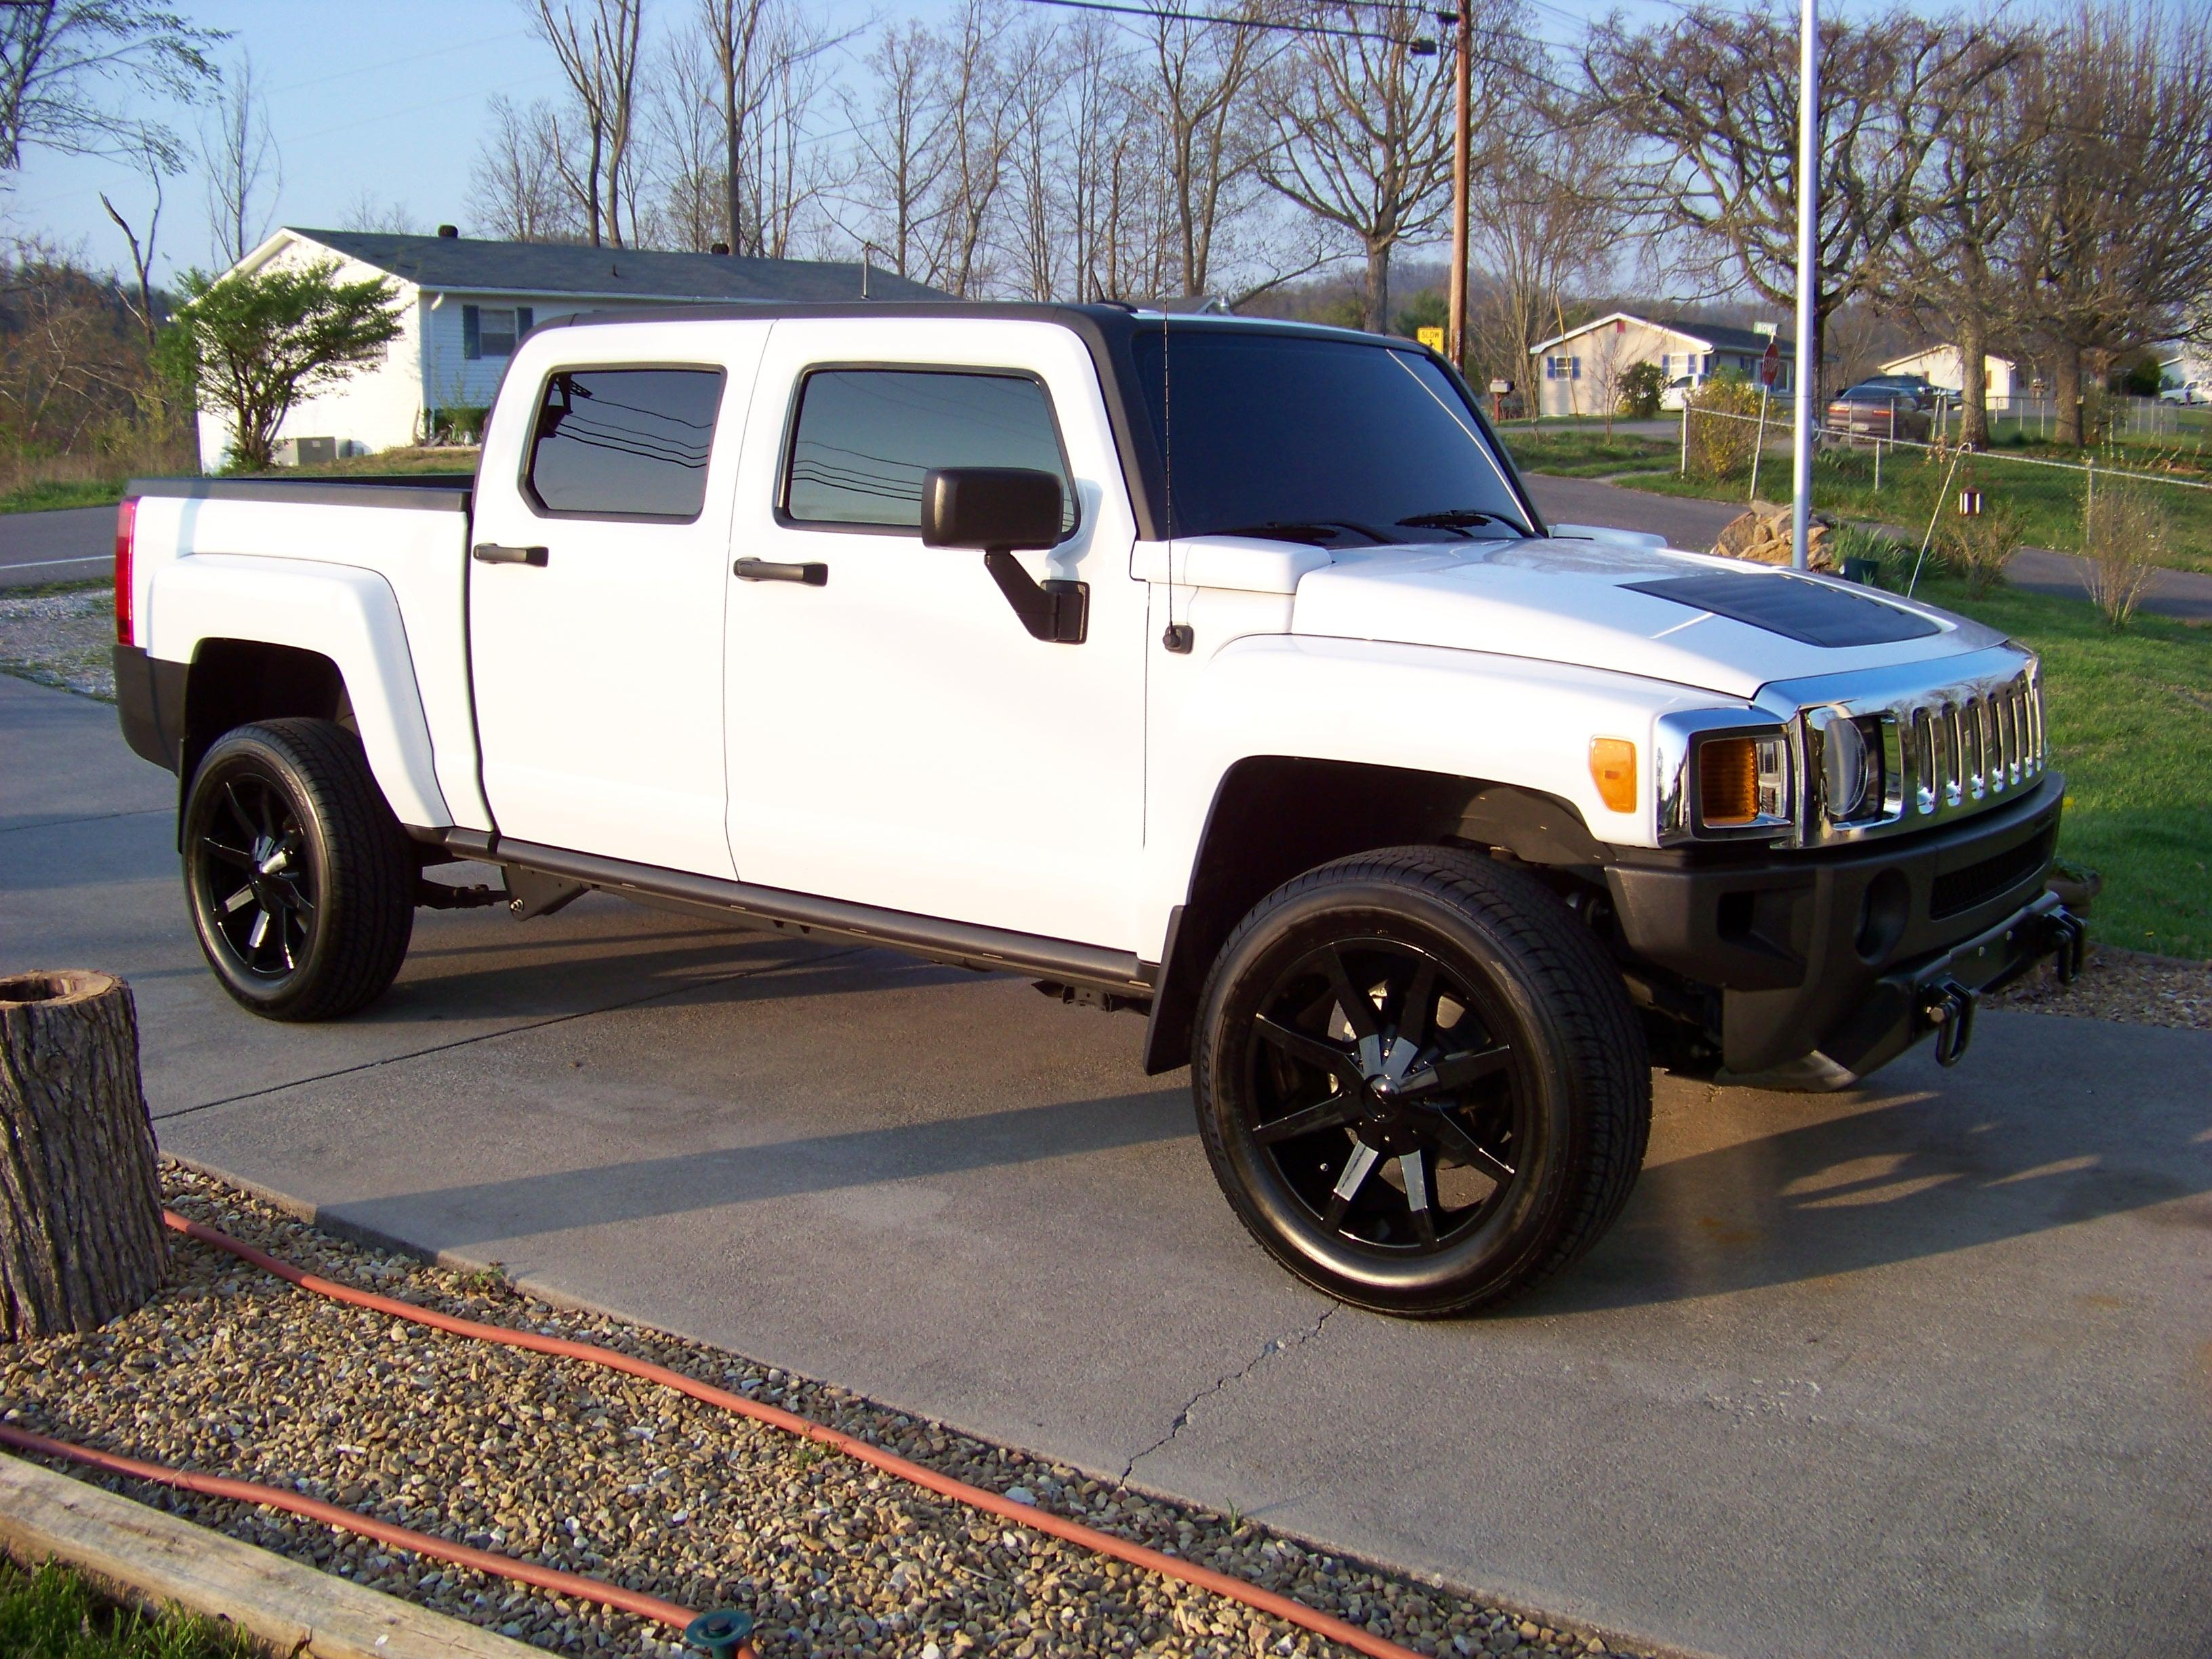 johns d 2009 Hummer H3TSport Utility Pickup 4D 5 ft Specs s